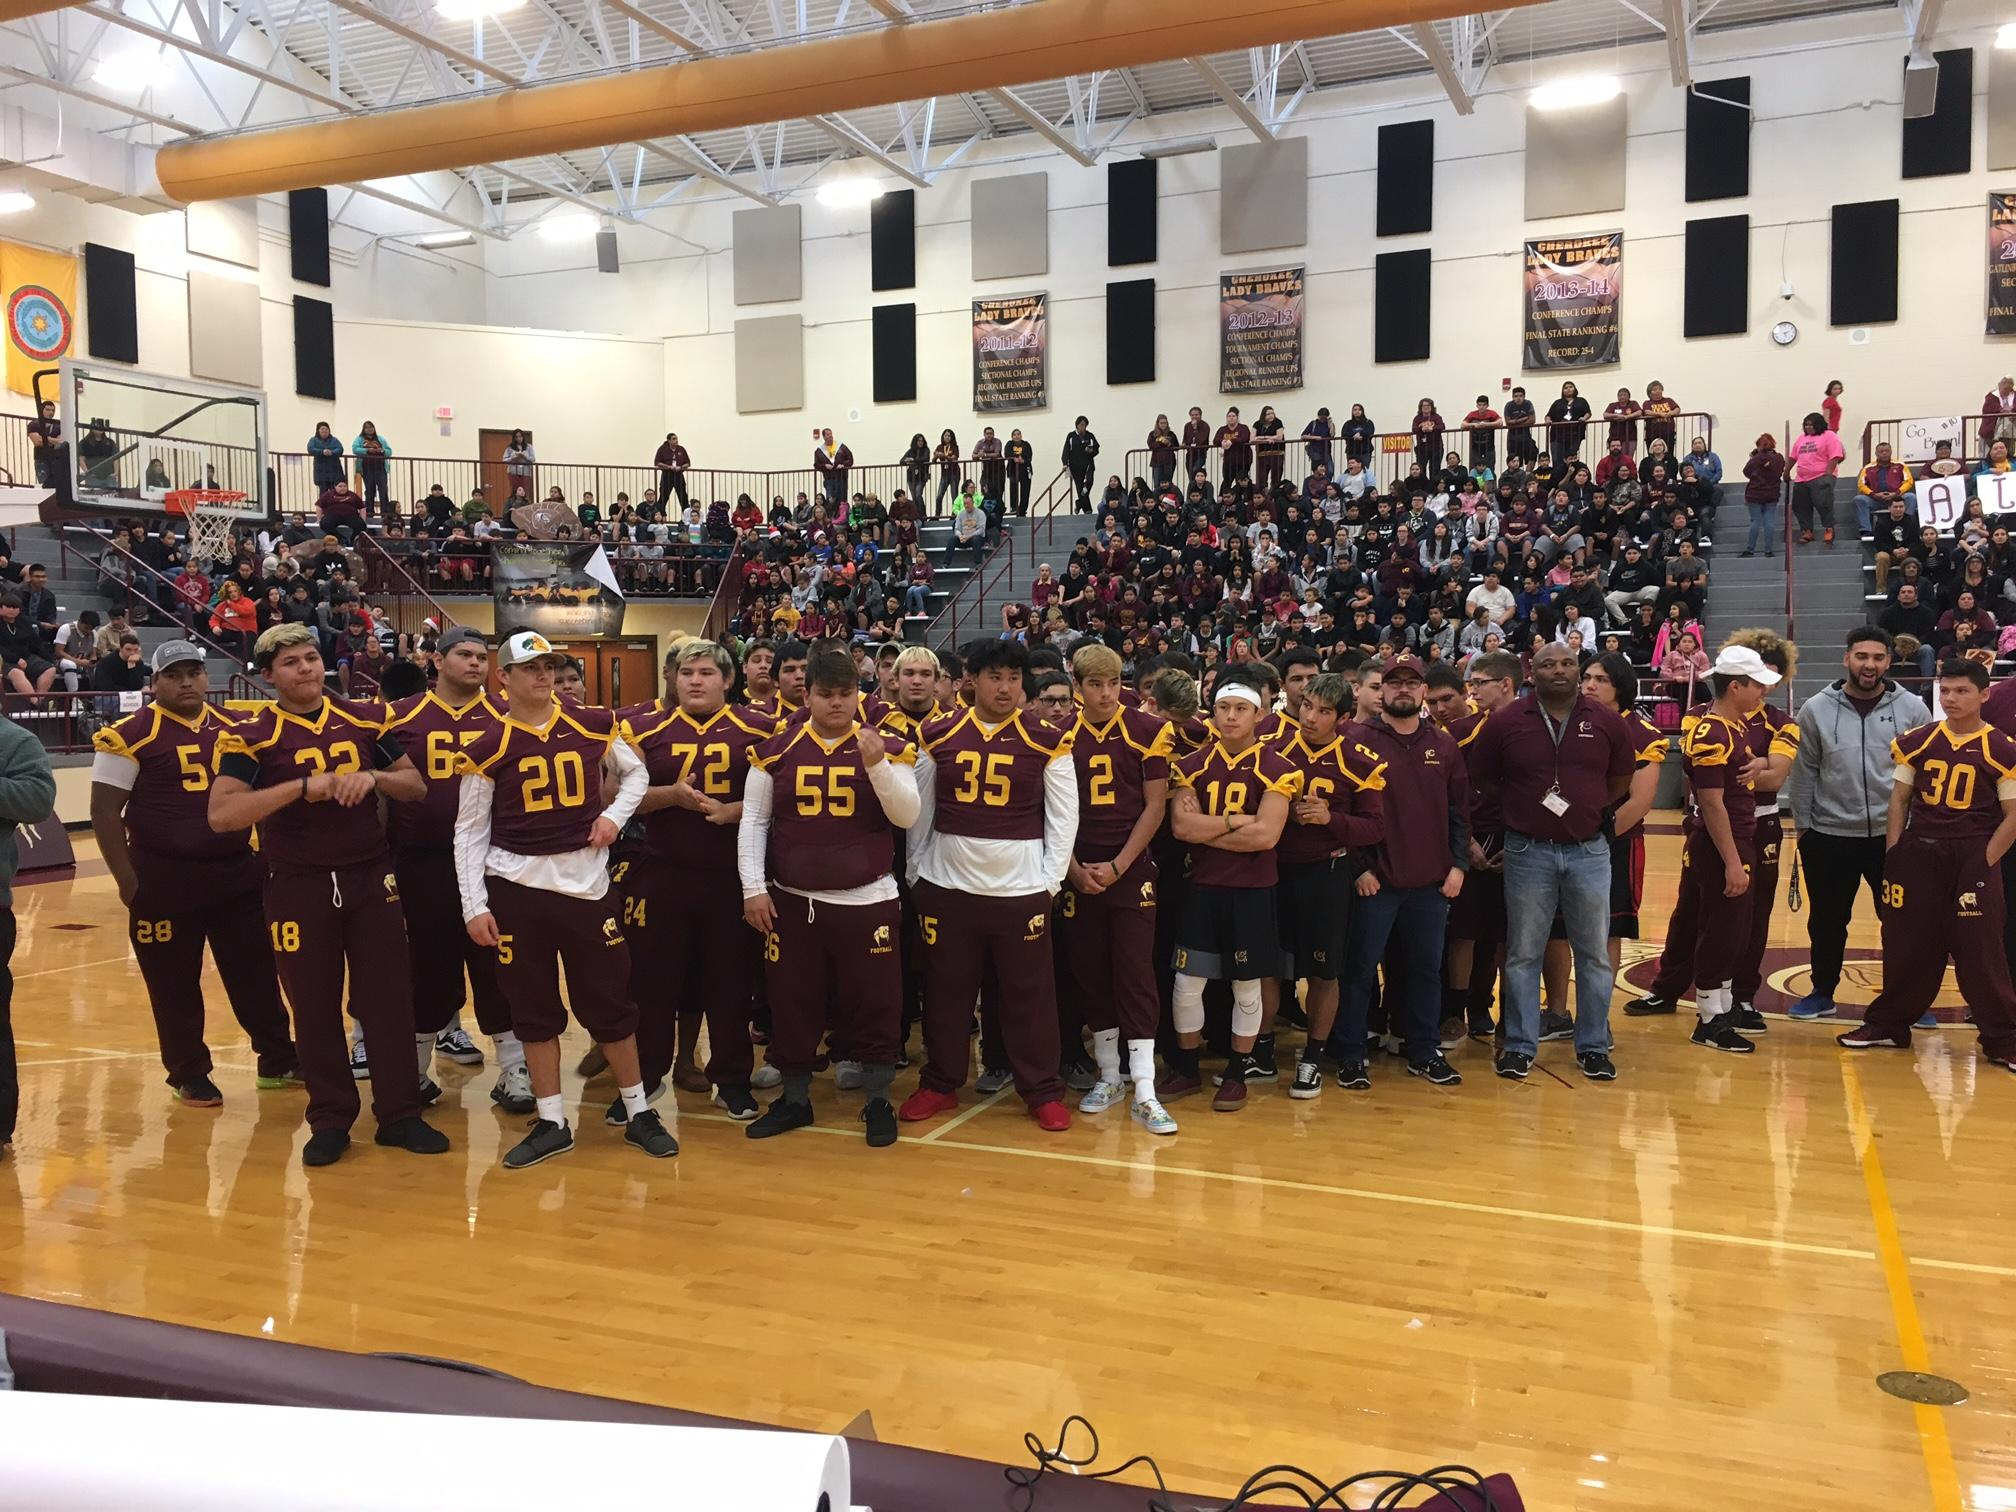 The Cherokee Braves football team heads to Raleigh on Saturday to play to play for the state 1A title. Thursday, the entire Cherokee schools complex turned out to show their support. (Photo credit: WLOS staff)